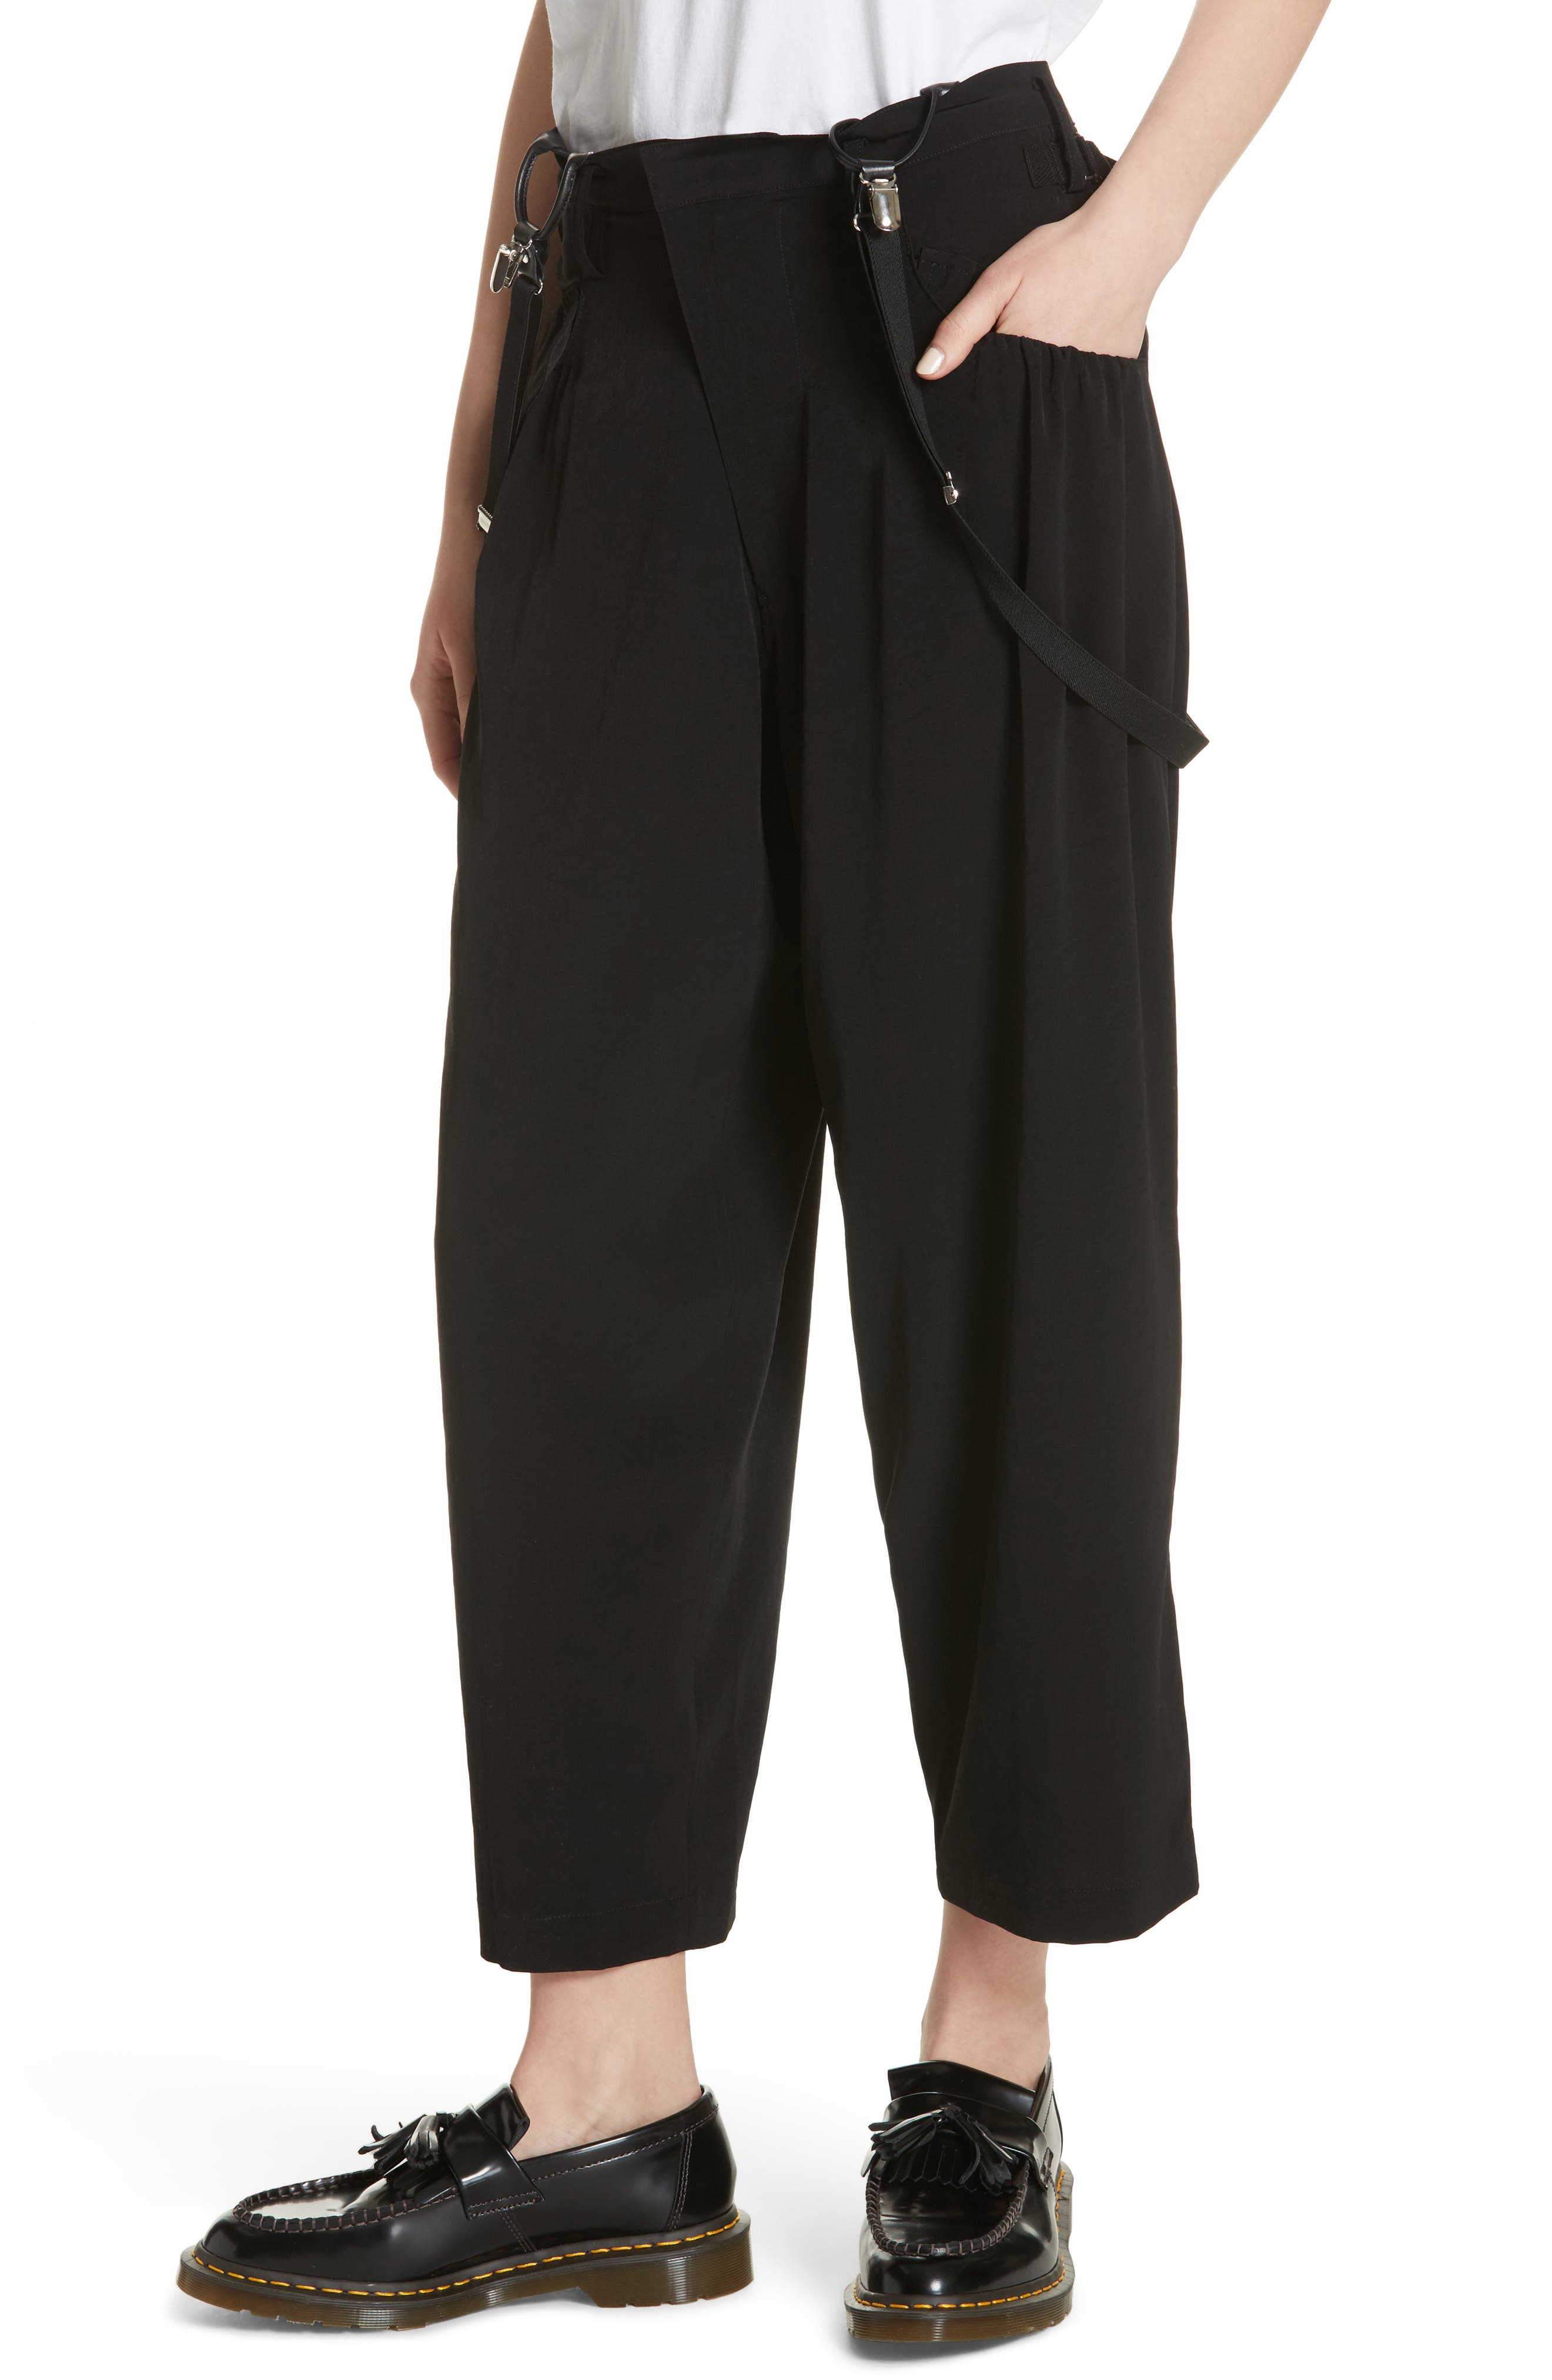 Pants with Suspenders,                             Alternate thumbnail 4, color,                             001